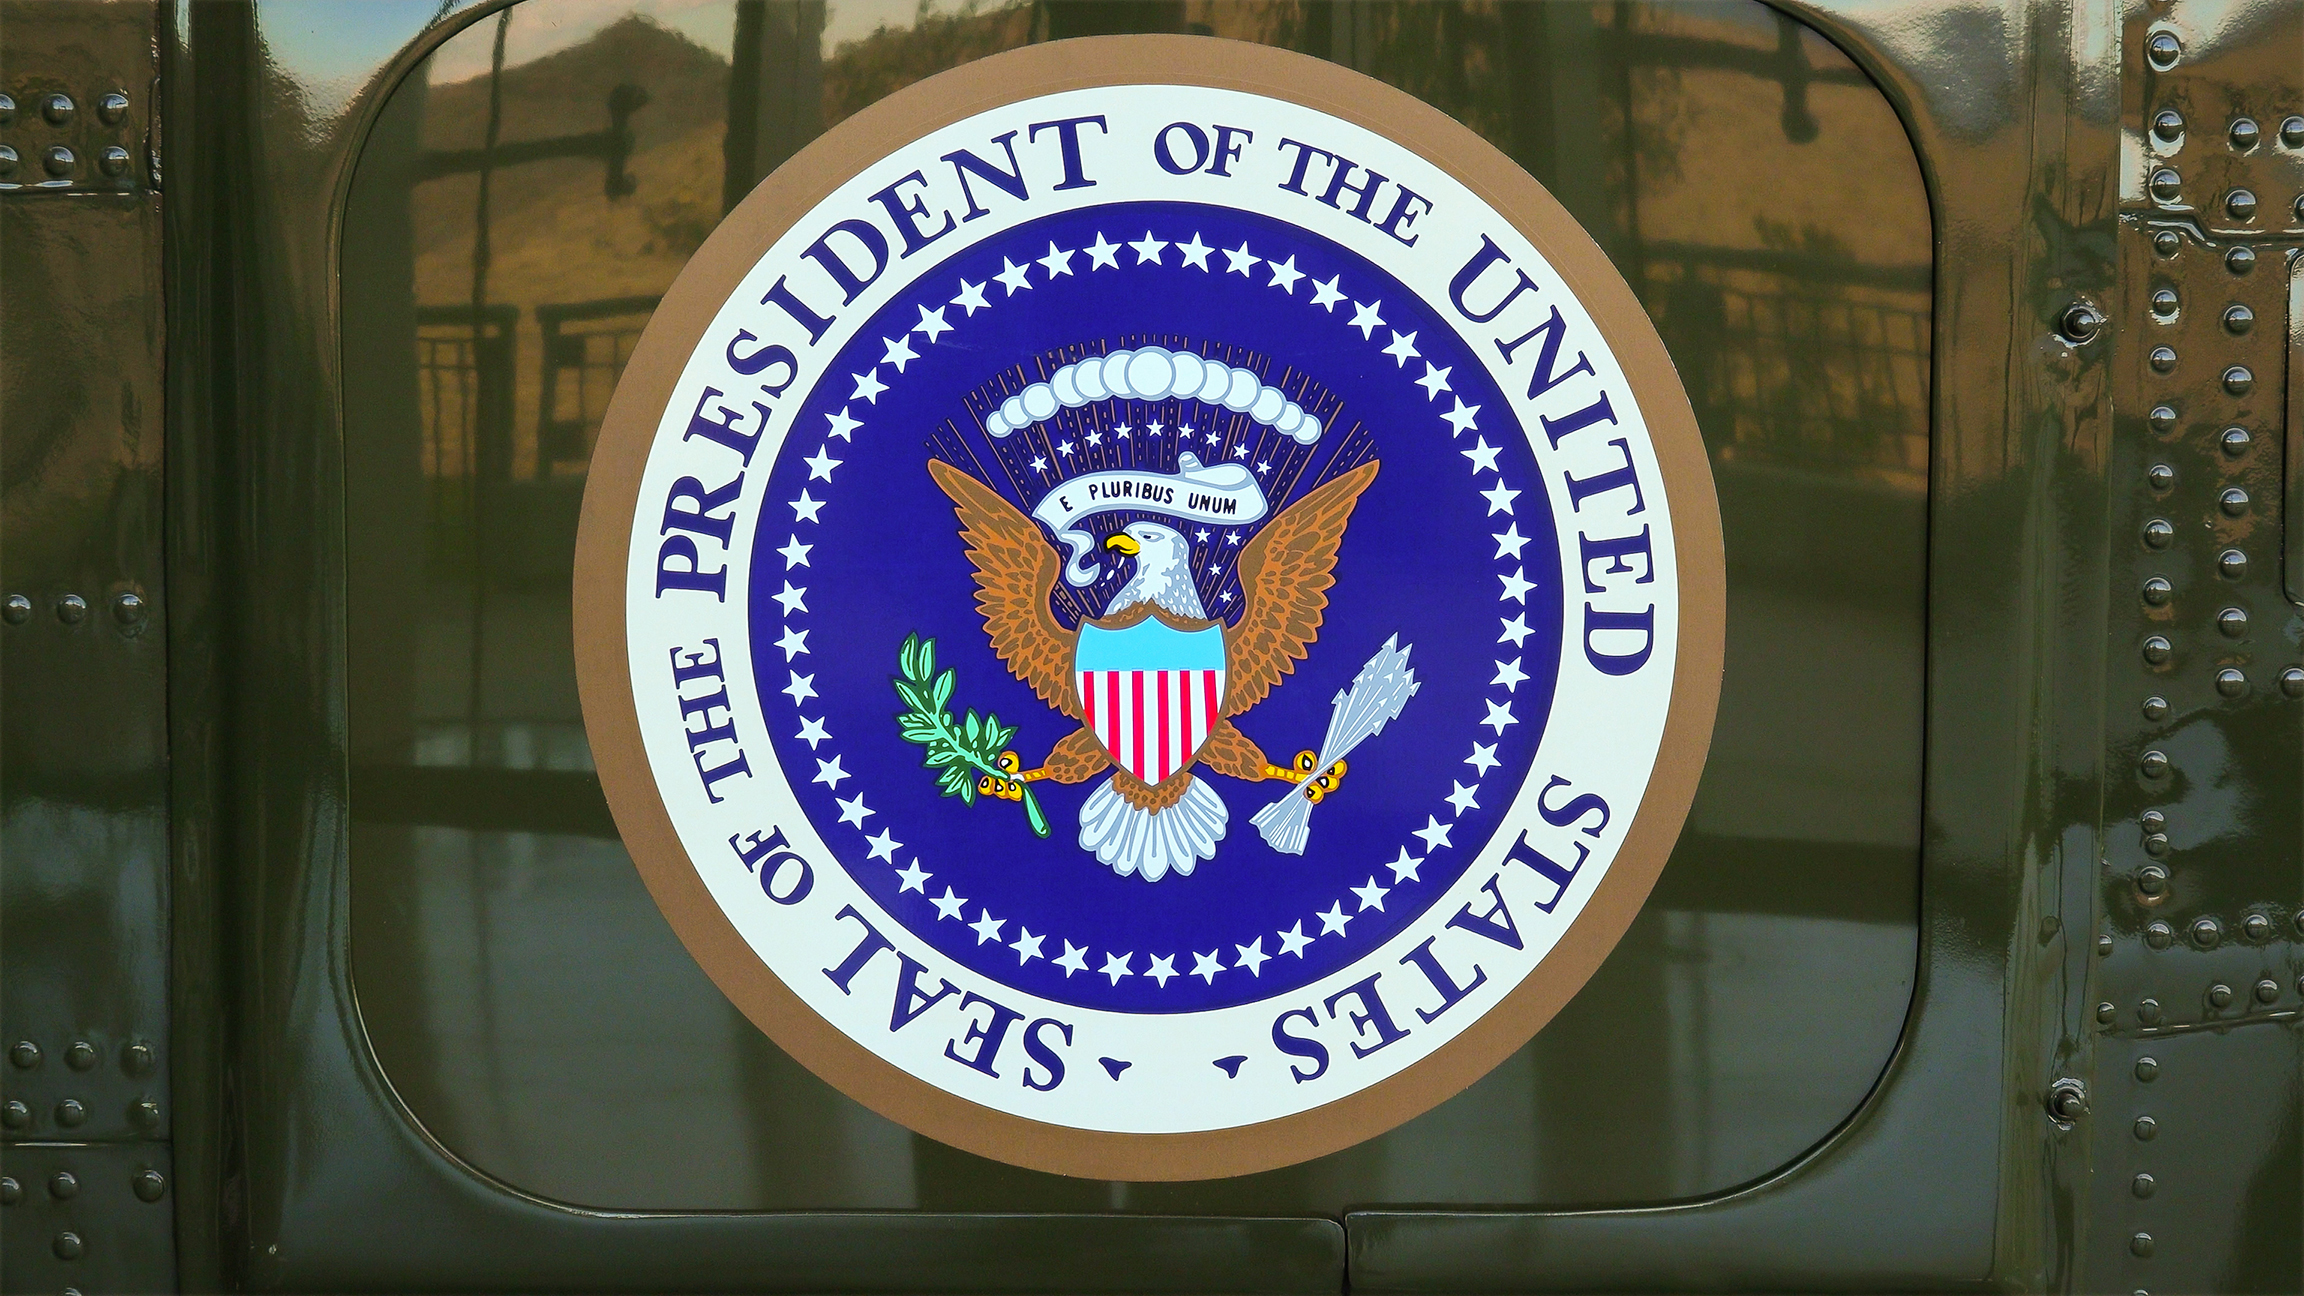 The seal of the President of the United States of America